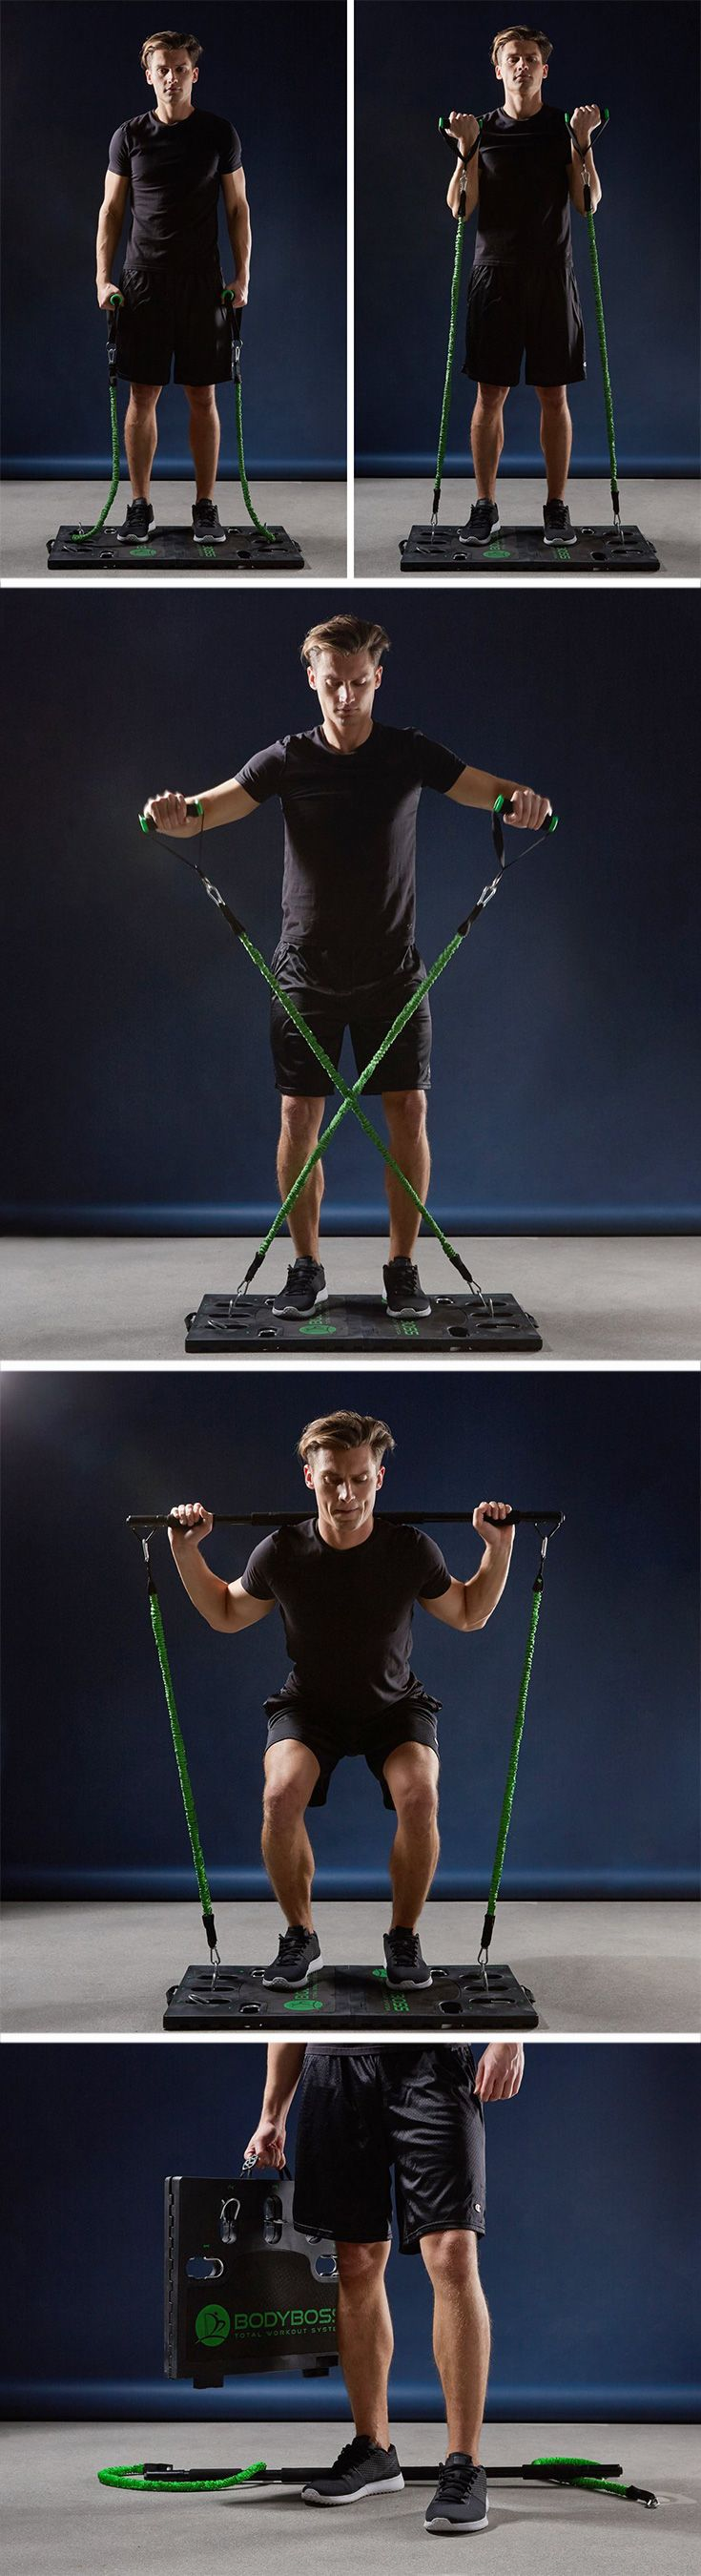 The bodyboss uses pulling of elastic cords to